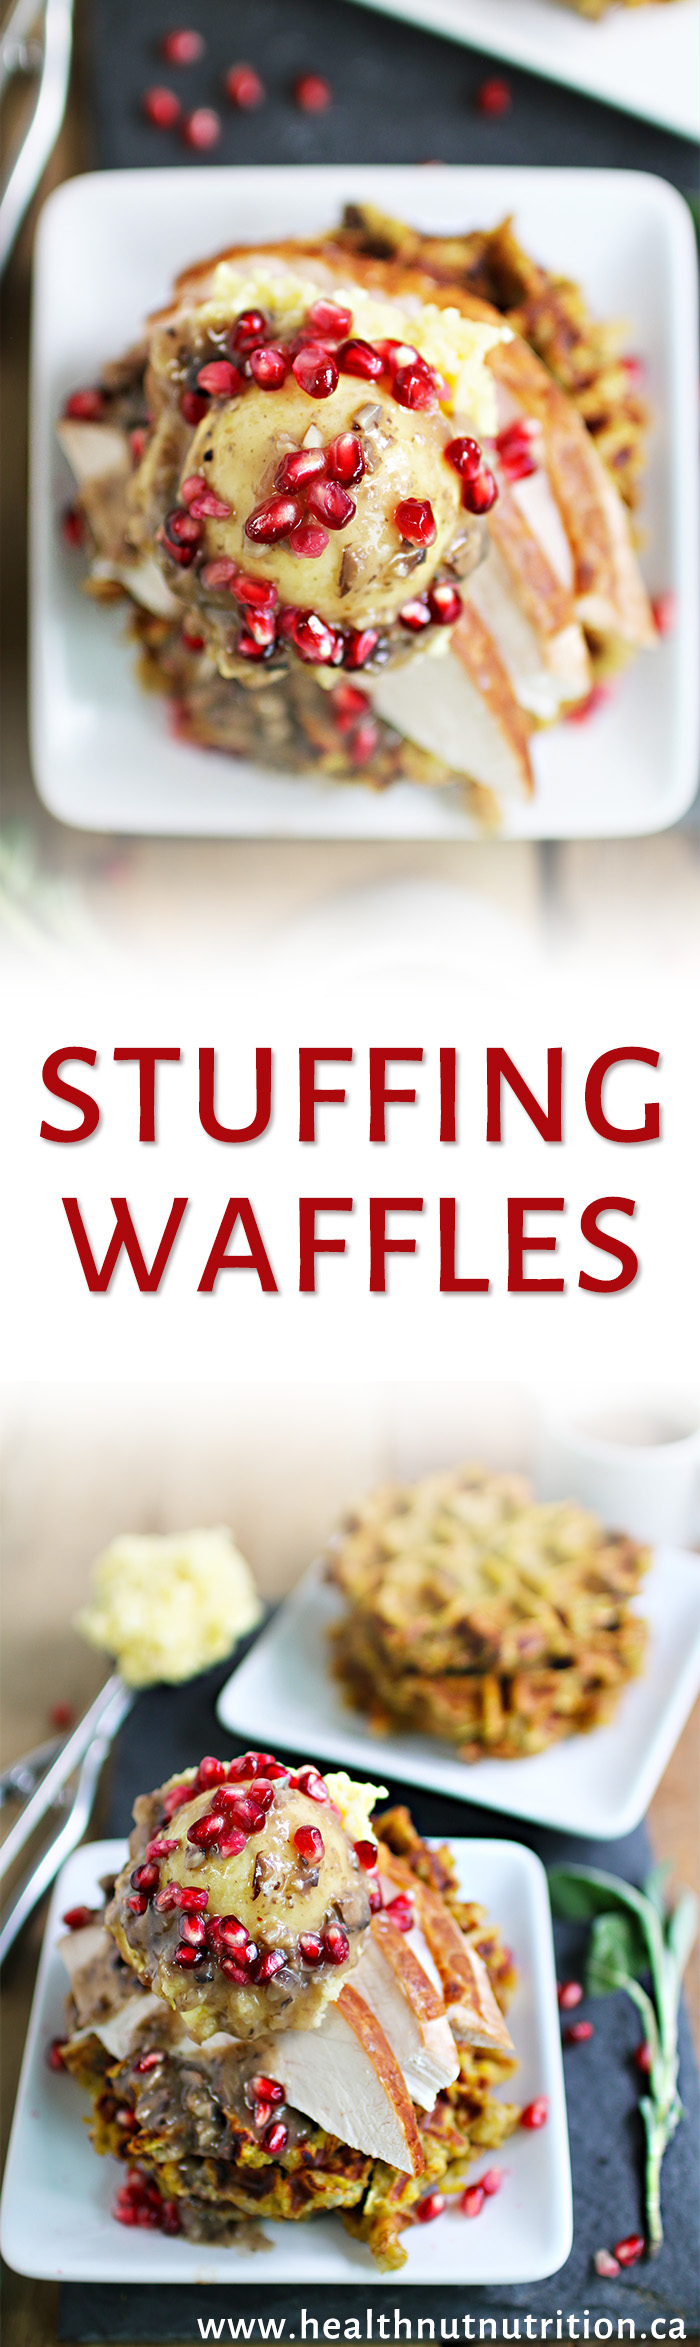 Thanksgiving leftovers all wrapped up in a tasty stuffing waffle tower smothered in a mushroom gravy.